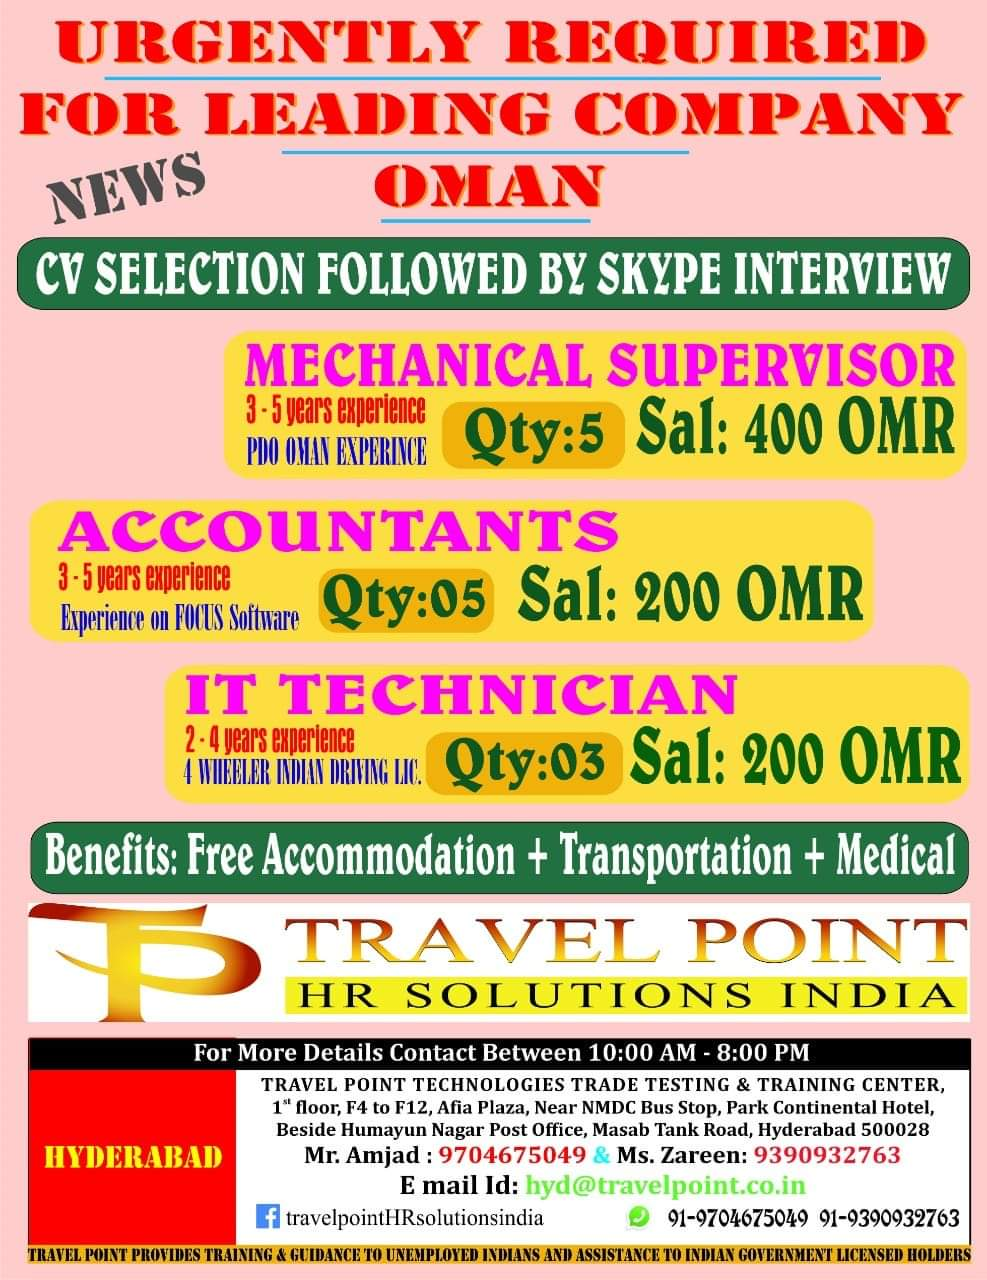 URGENTLY REQUIREMENT FOR LEADING COMPANY